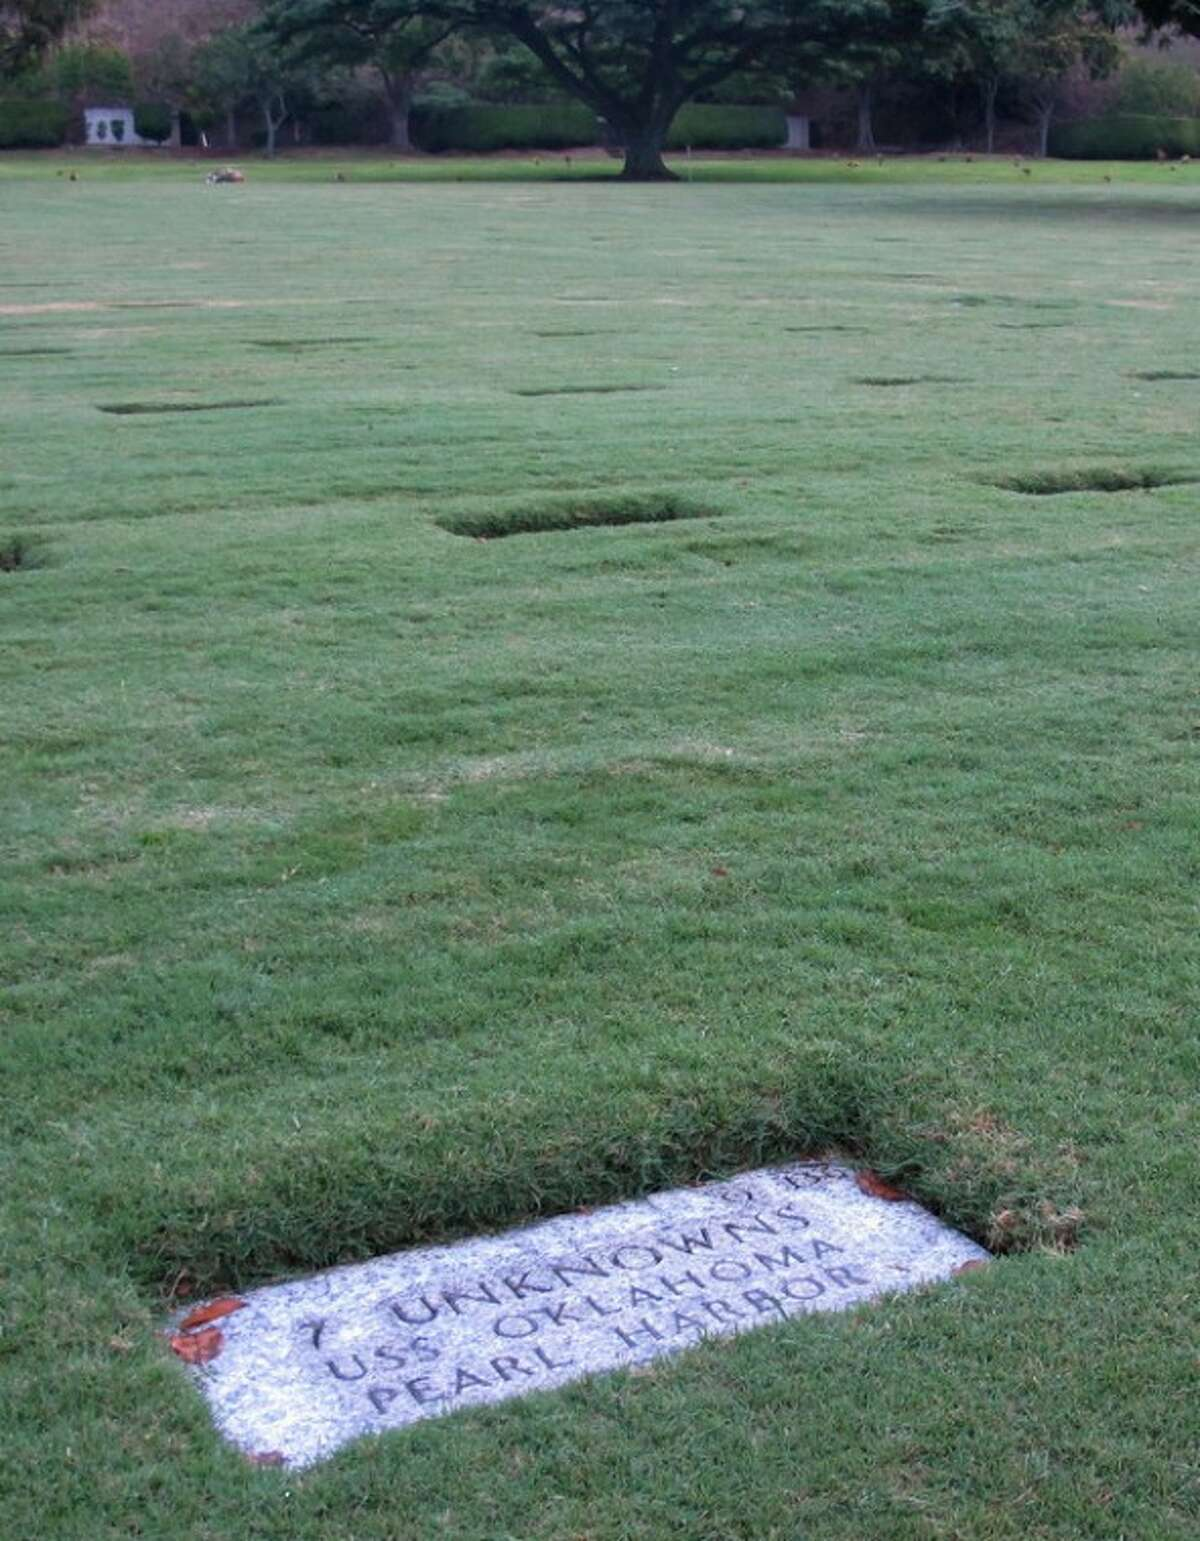 This Dec. 5, 2012 photo at the National Memorial Cemetery of the Pacific in Honolulu shows a gravestone identifying it as the resting place of 7 unknowns from the USS Oklahoma who died in Japanese bombing of Pearl Harbor. The Navy and National Park Service will honor Ray Emory, a Pearl Harbor survivor who pushed to put ship names on the gravestones and identify unknown remains, on Dec. 7 for his determination to have Pearl Harbor remembered, and remembered accurately. (AP Photo/Audrey McAvoy)